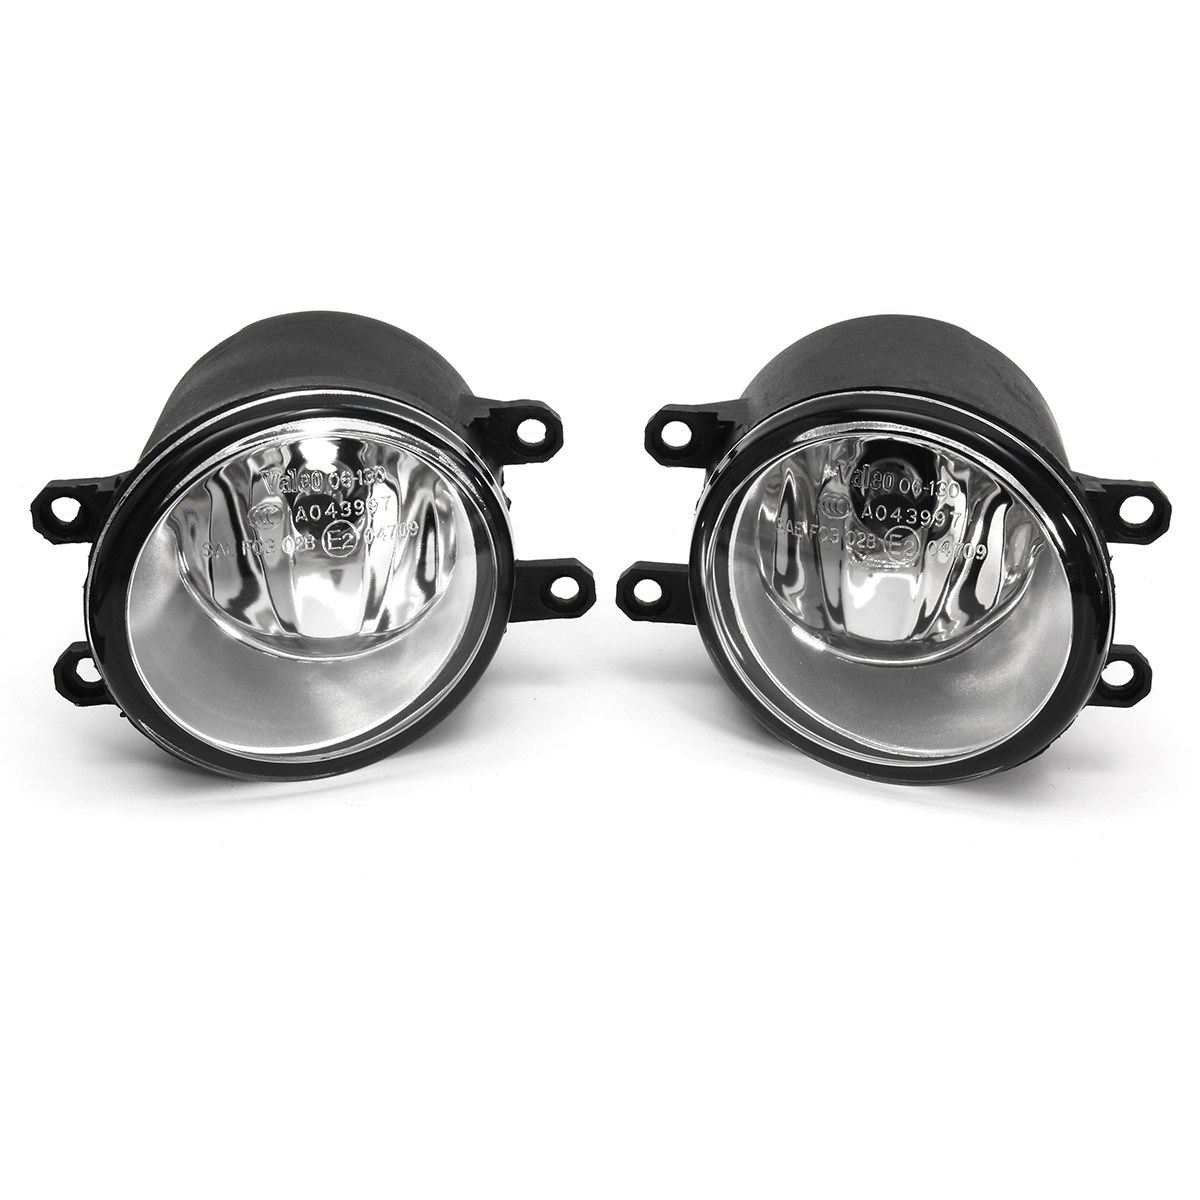 1 Pair Front Bumper Car Fog Light Covers Switch H11 Bulbs For Toyota Corolla 08-10 pair front bumper clear driving fog lights bulbs for toyota corolla 2001 2002 toyota corolla 2005